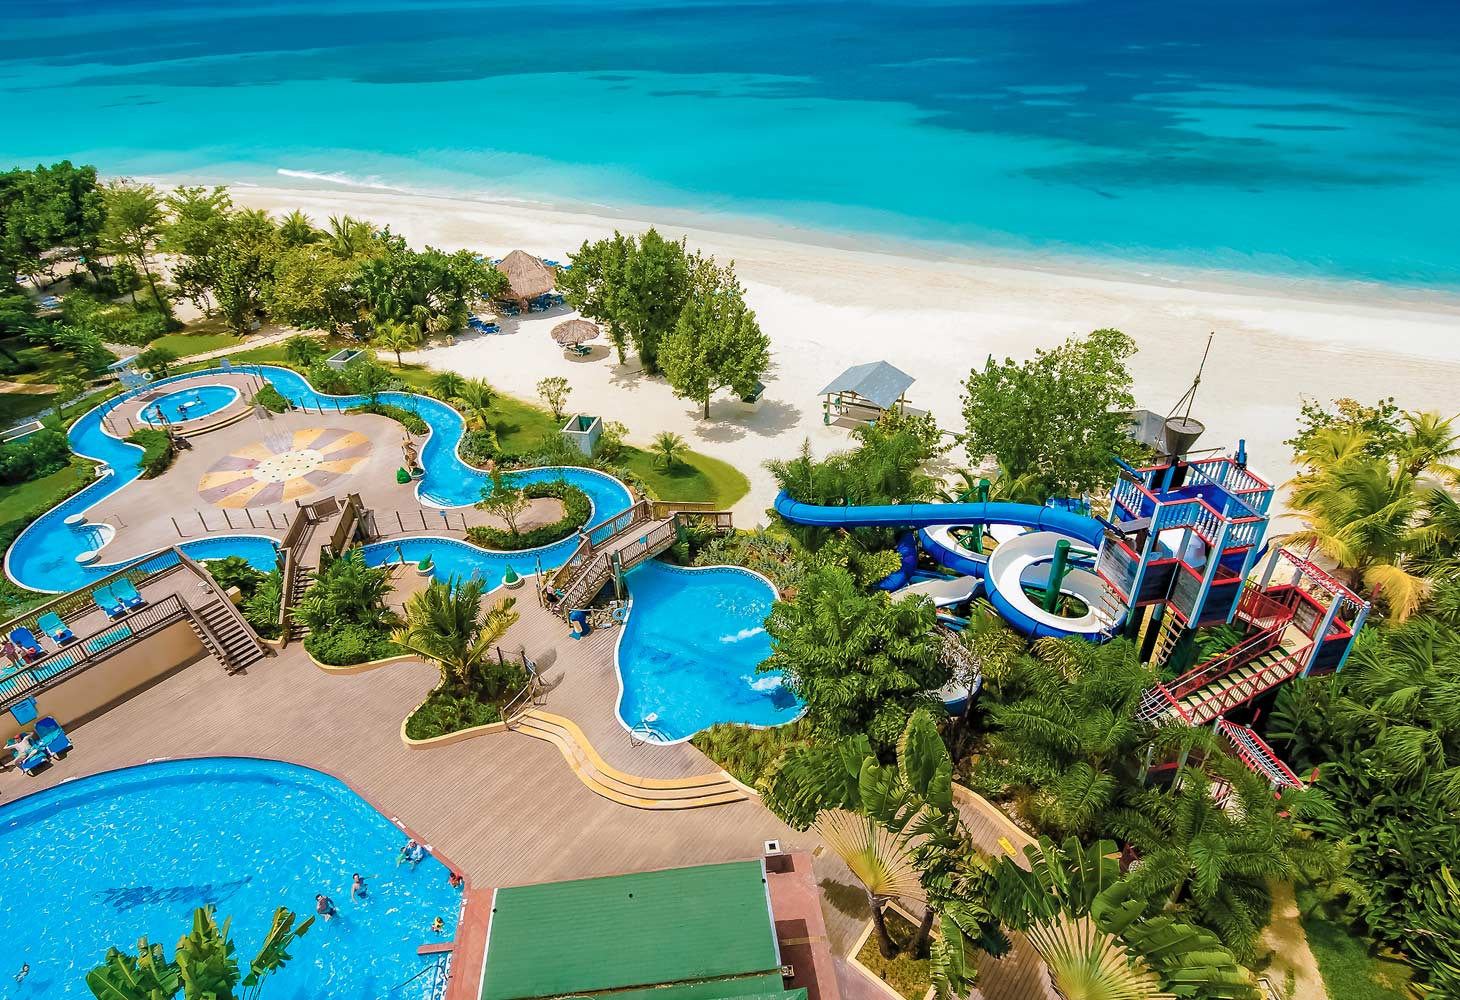 CaribbeanBeaches In Inclusive Vacations Friendly All Resortsamp; Kid VpUSzM